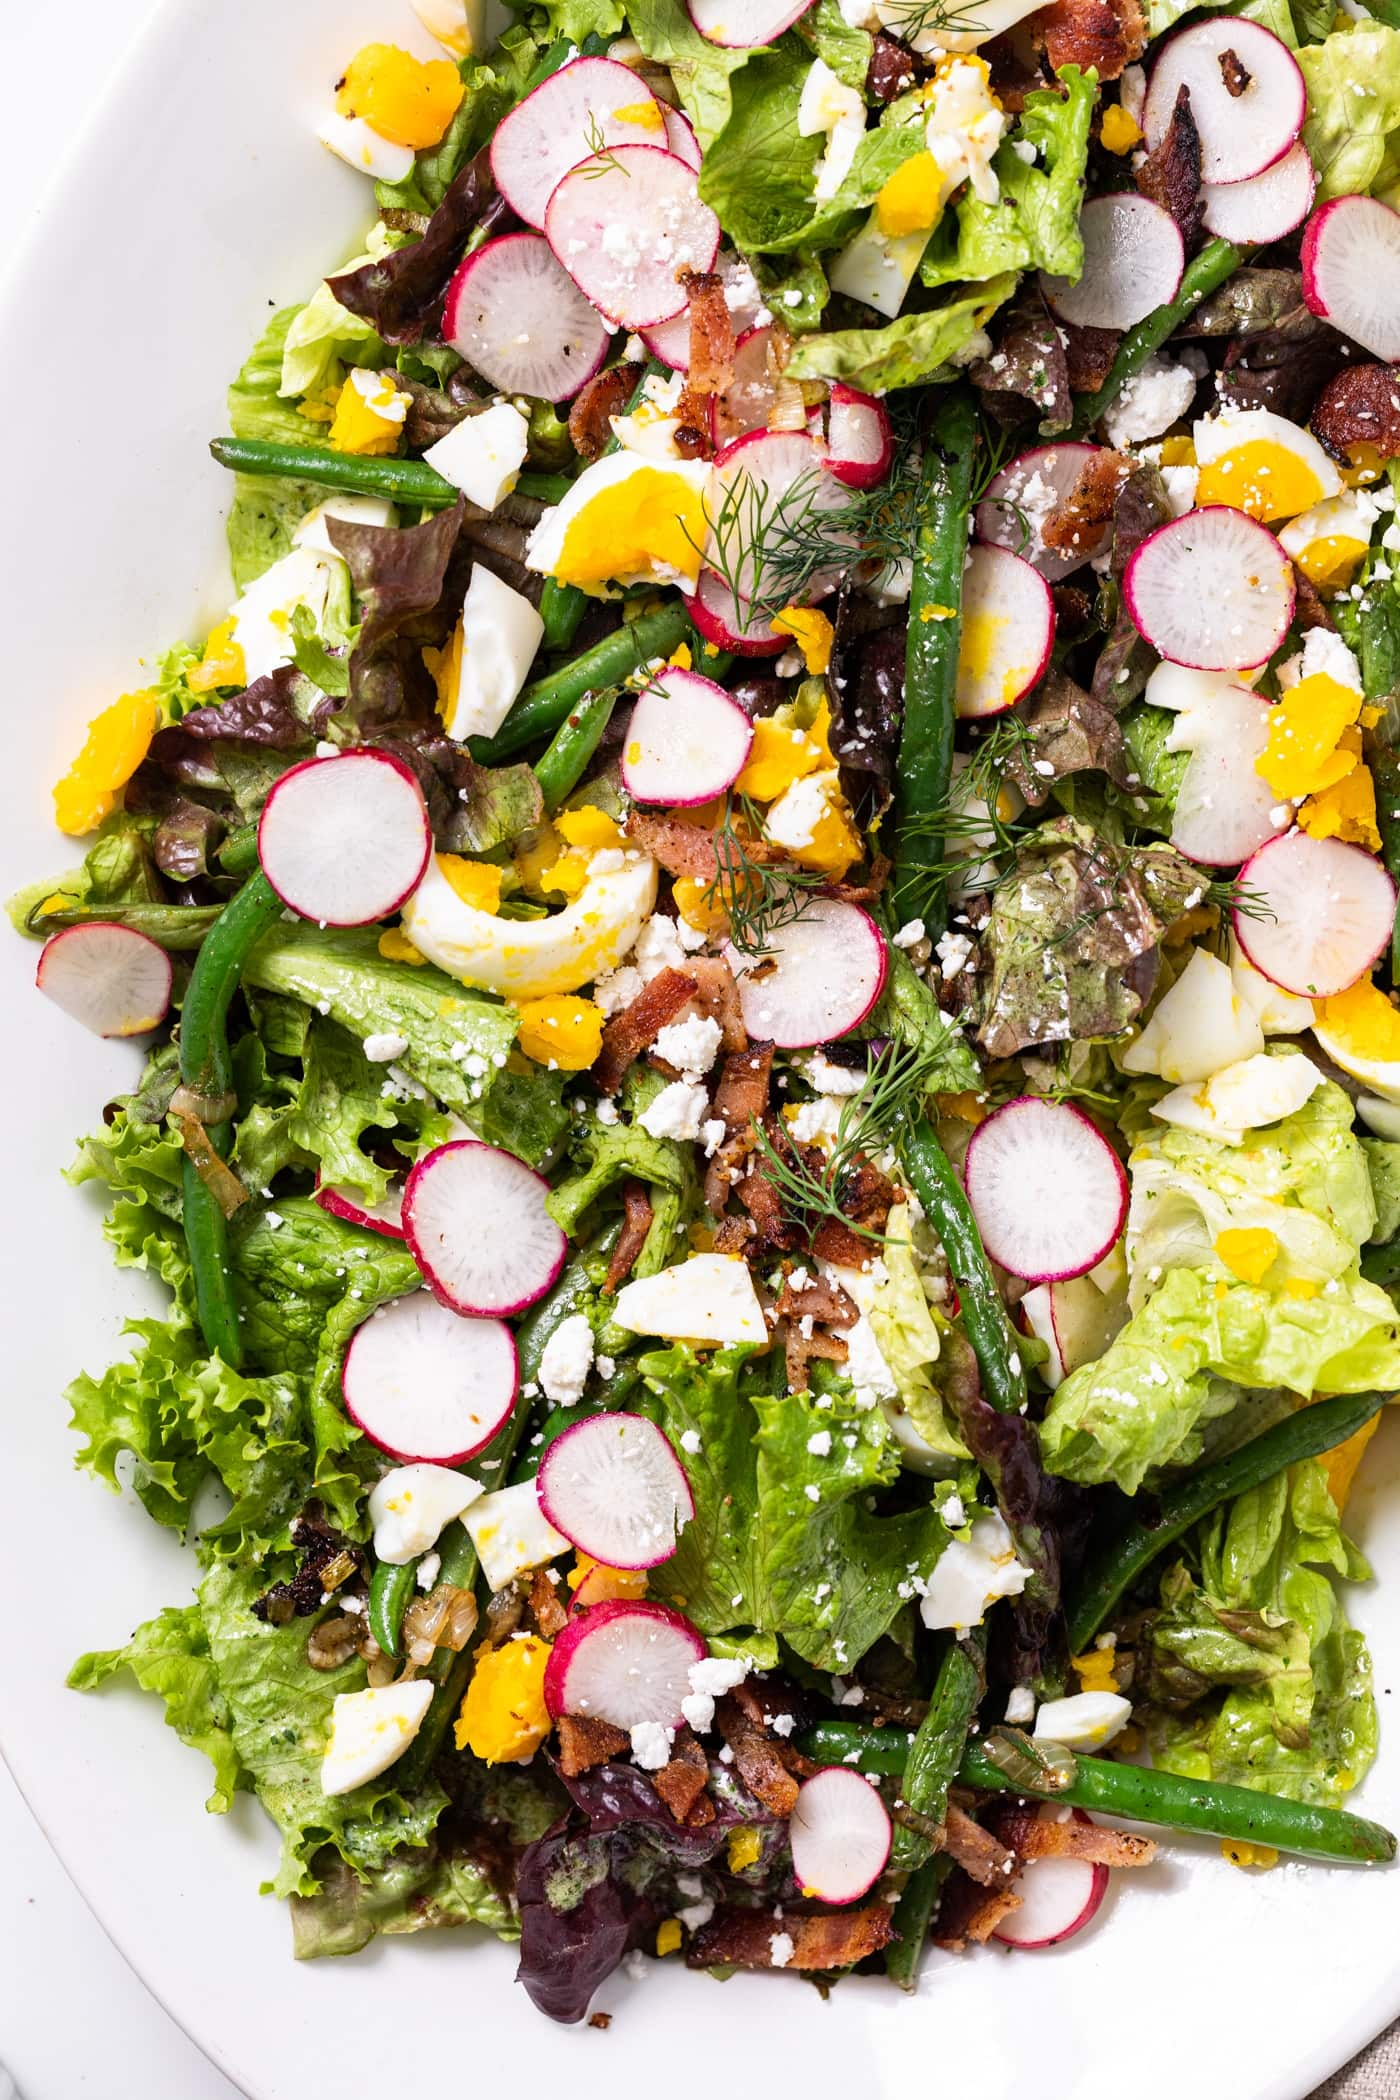 Top down view of white serving platter filled with green lettuce and topped with radishes, eggs, green beans, and bacon with herb dressing lightly poured over the top